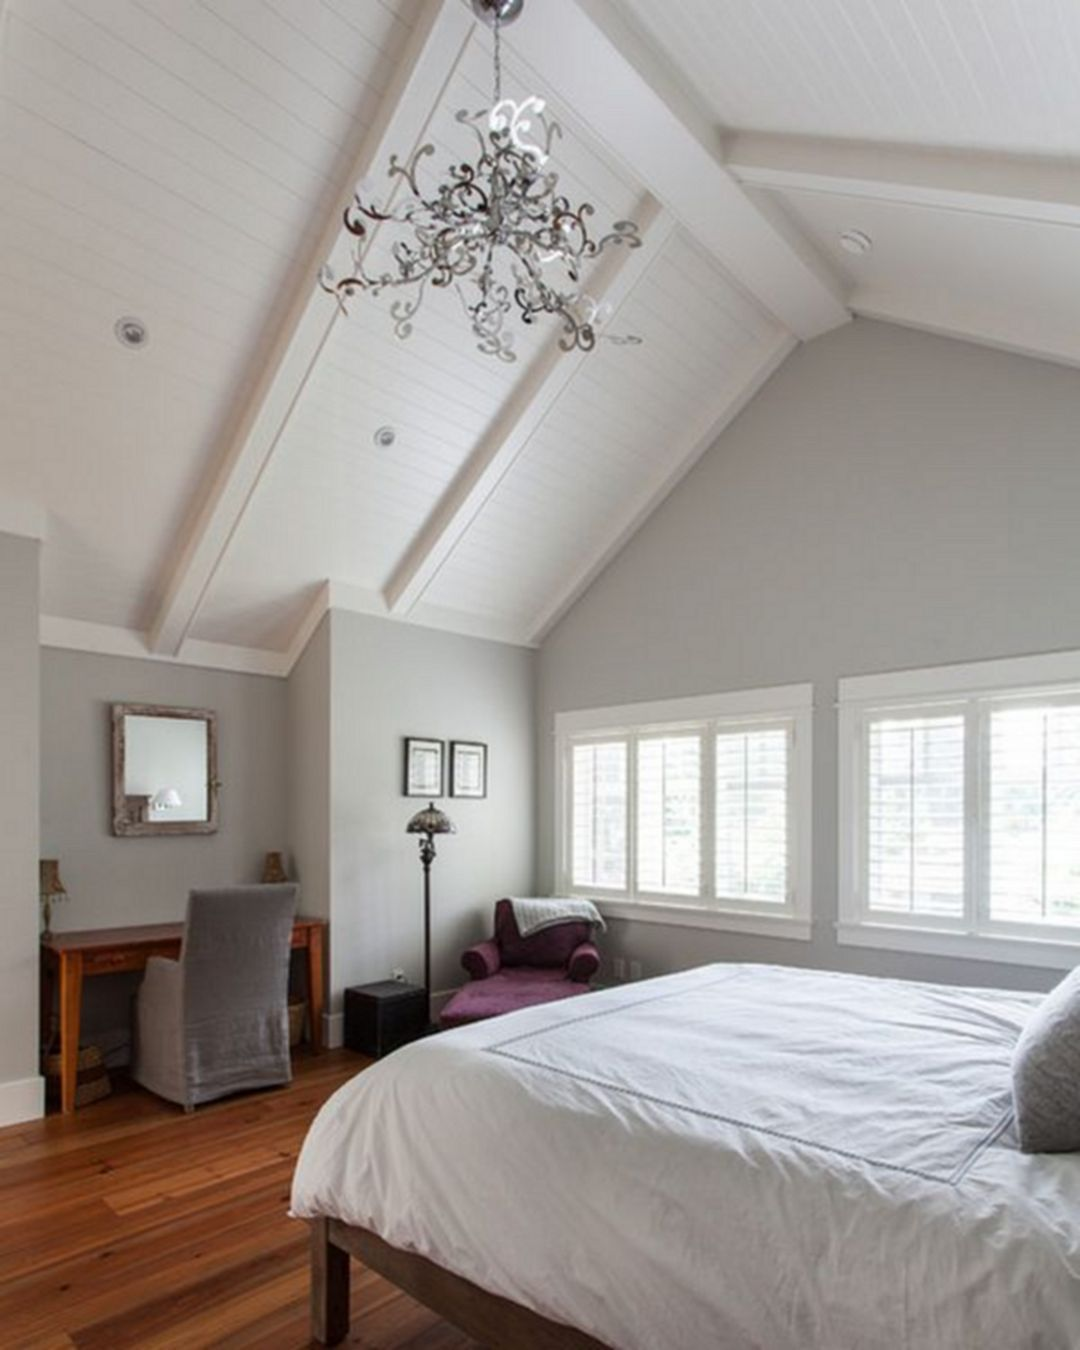 vaulted ceiling bedroom design ideas 241 - Inspirational Vaulted Ceiling Bedroom